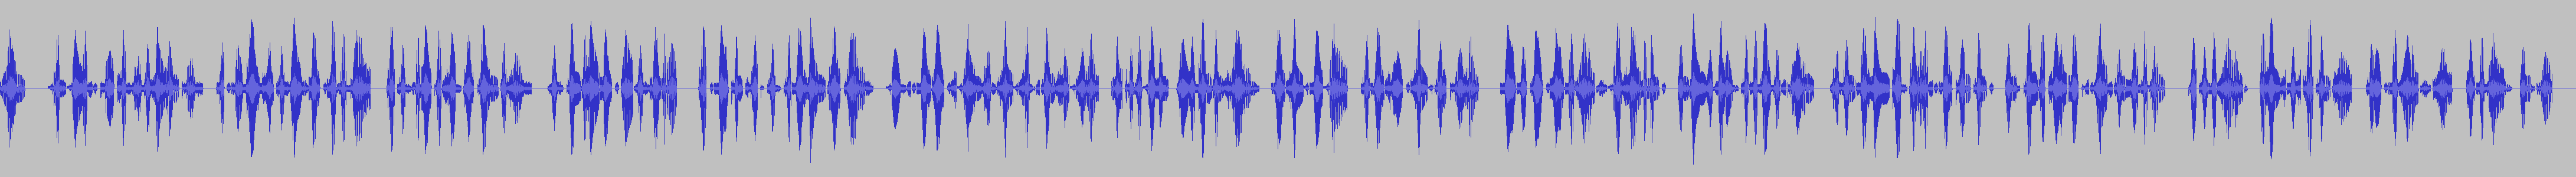 Waveform S, the synthesized audio wave